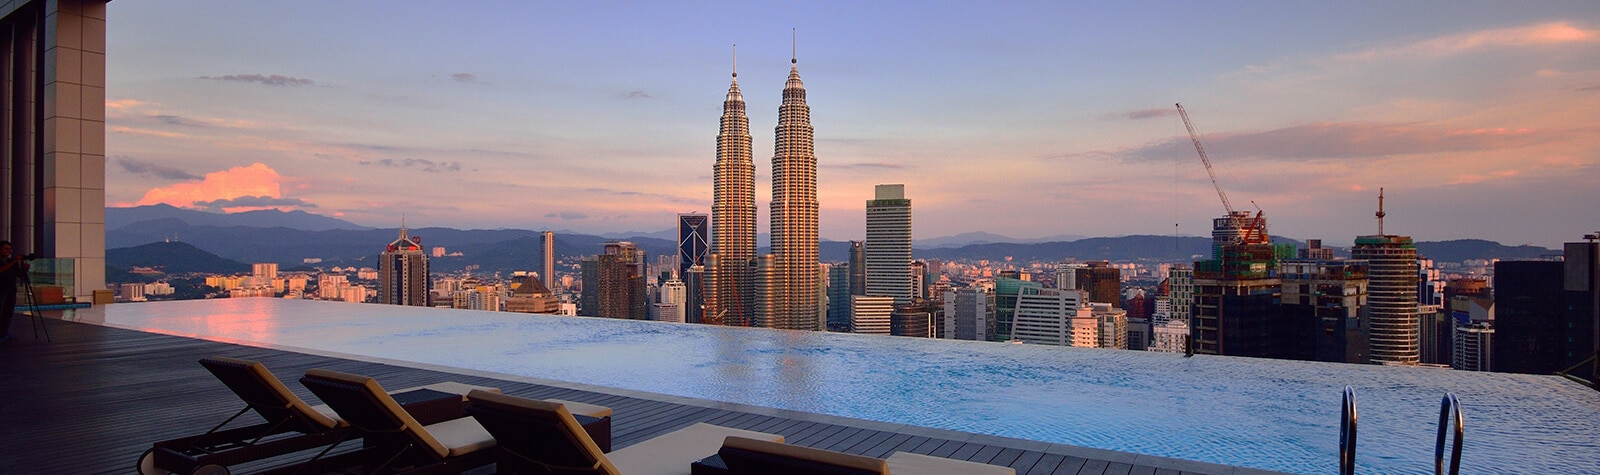 <strong>Hotels met zwembad in Kuala Lumpur.</strong>